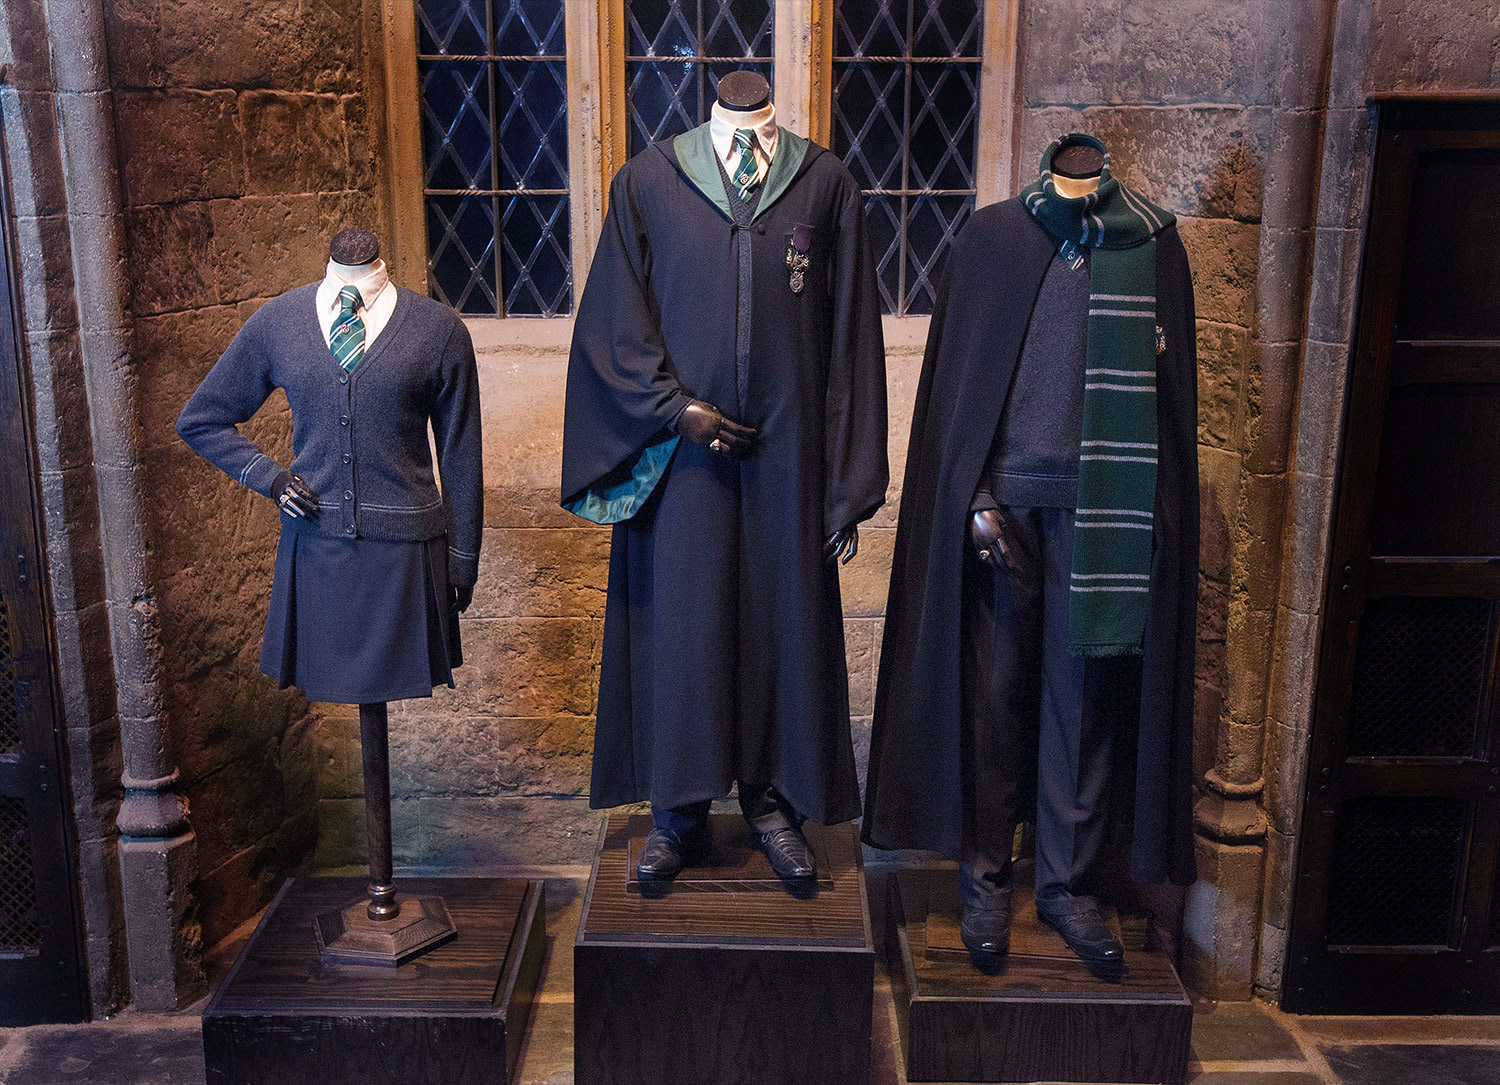 Slytherin robes at the 'Harry Potter' studio tour